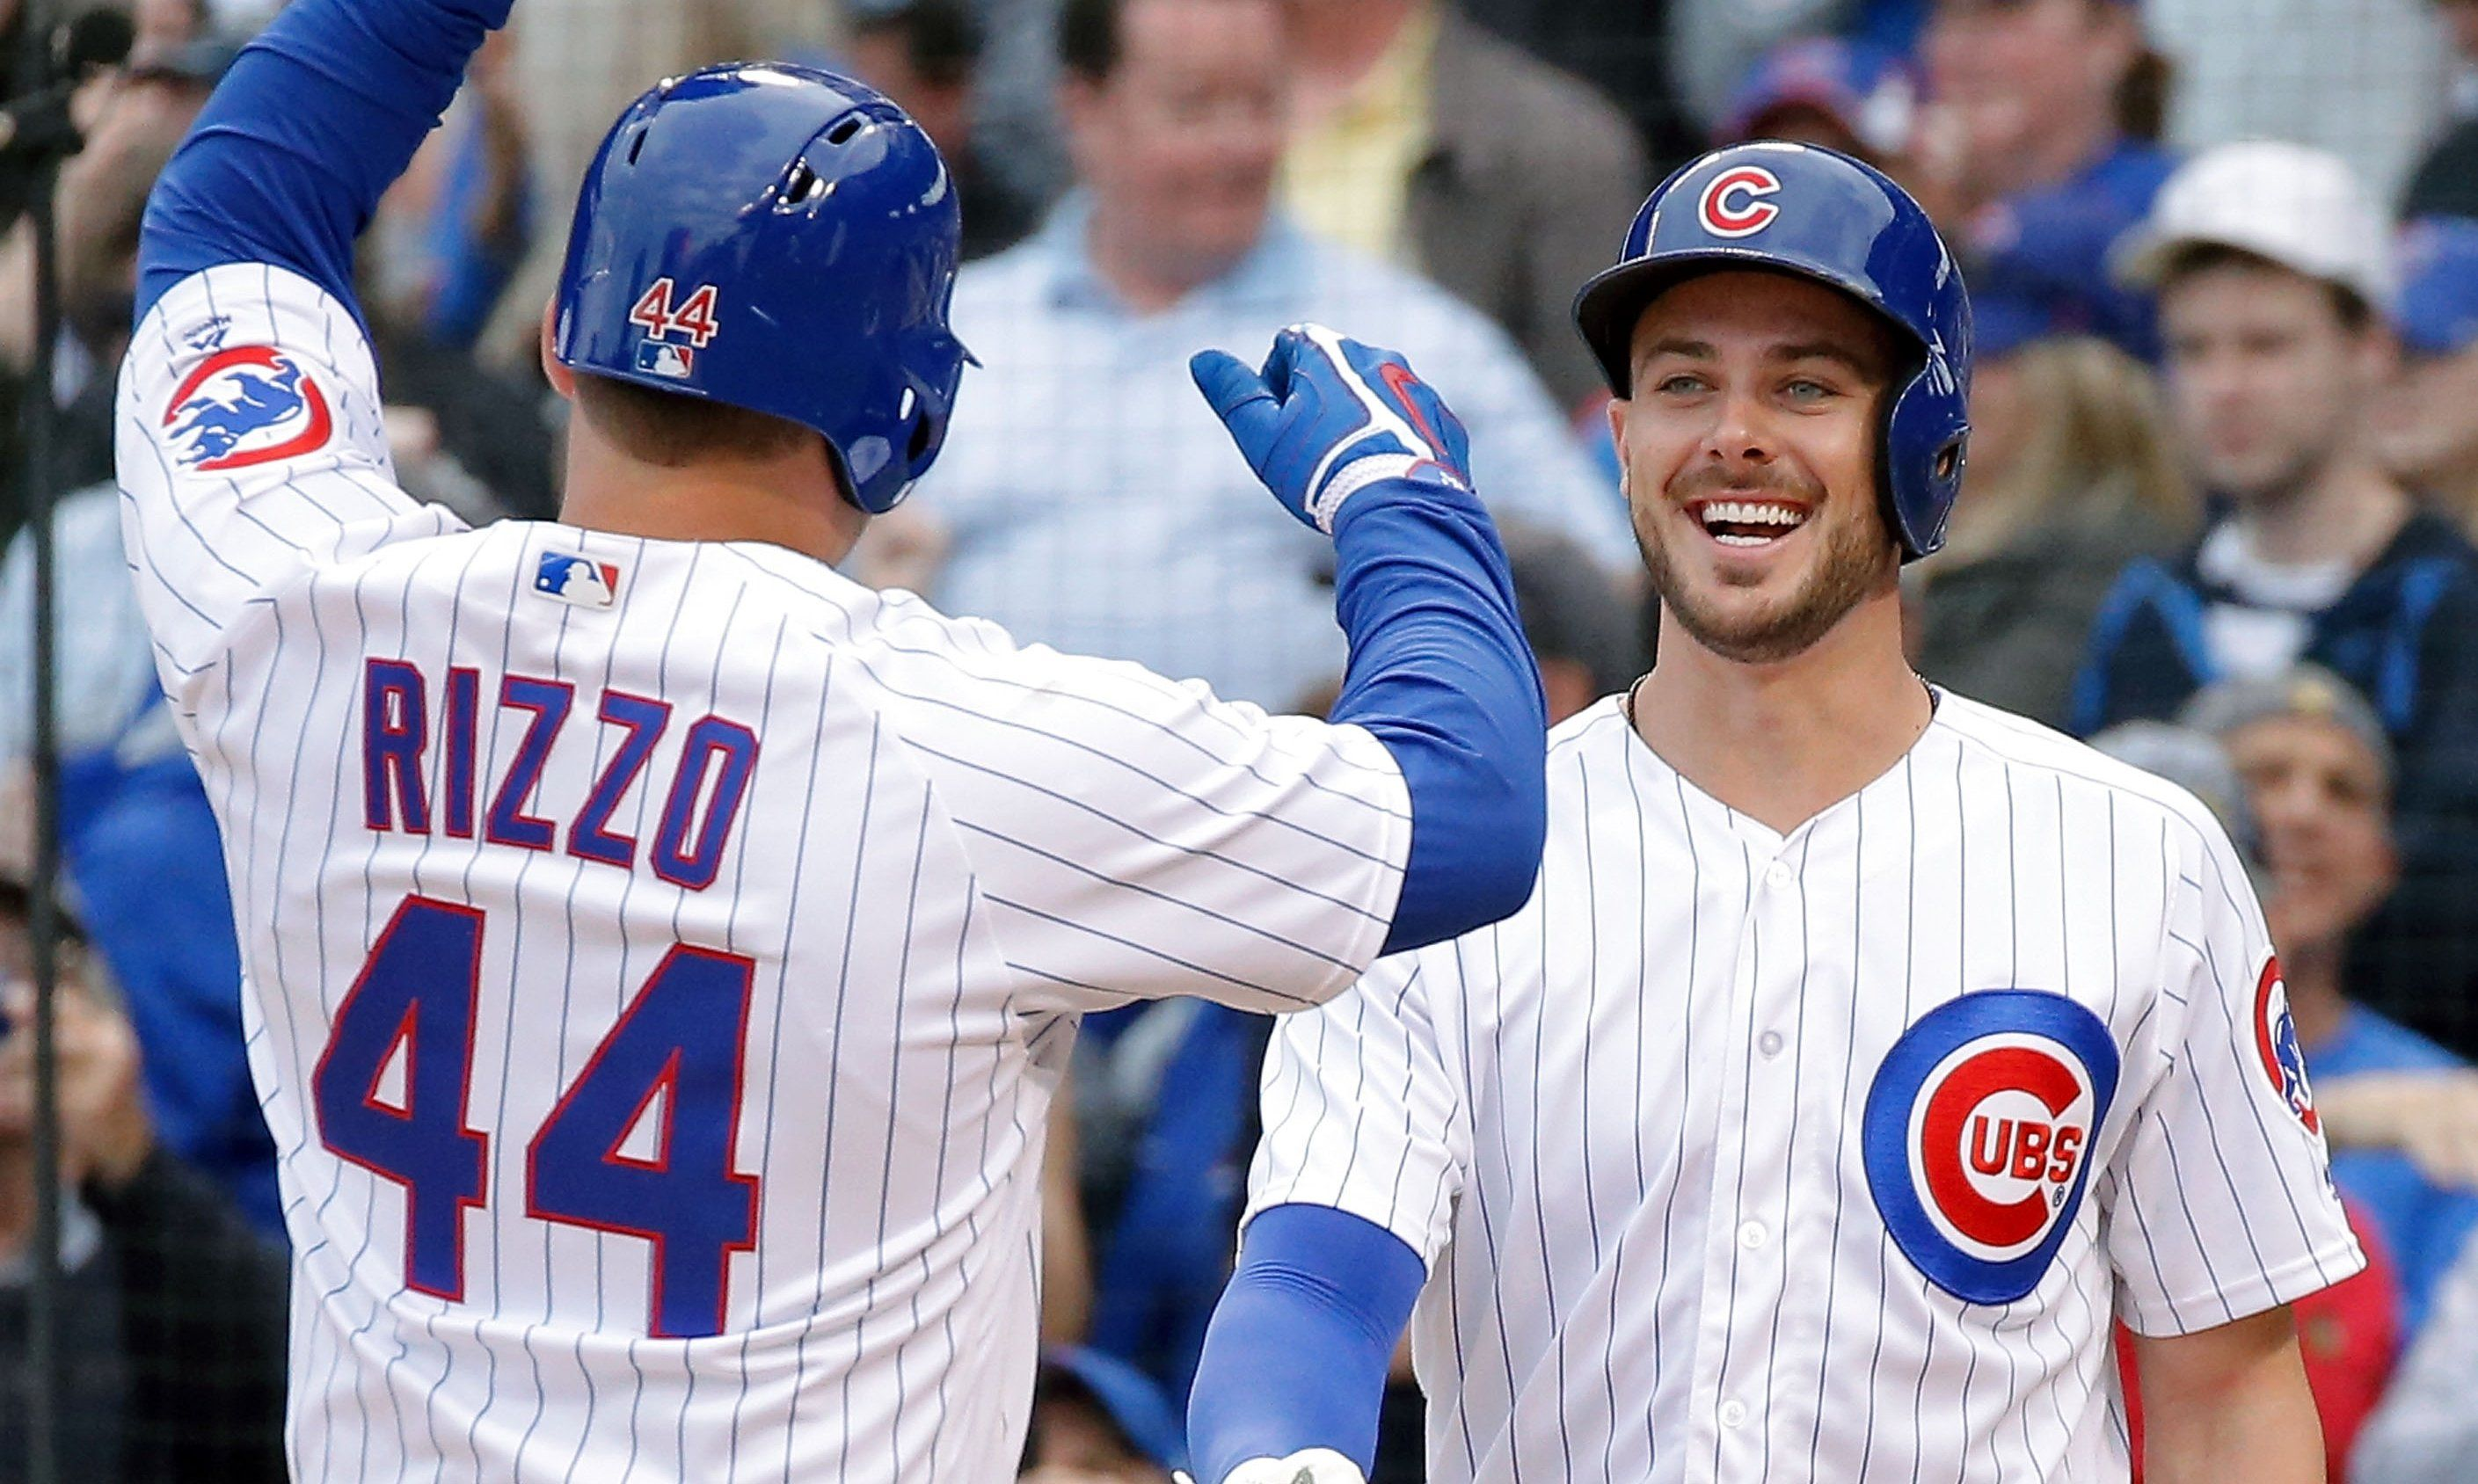 Cubs Cardinals To Play In London On June 13 14 2020 Wgn Tv In 2020 Cubs Players Mlb Baseball Players Cubs Cardinals